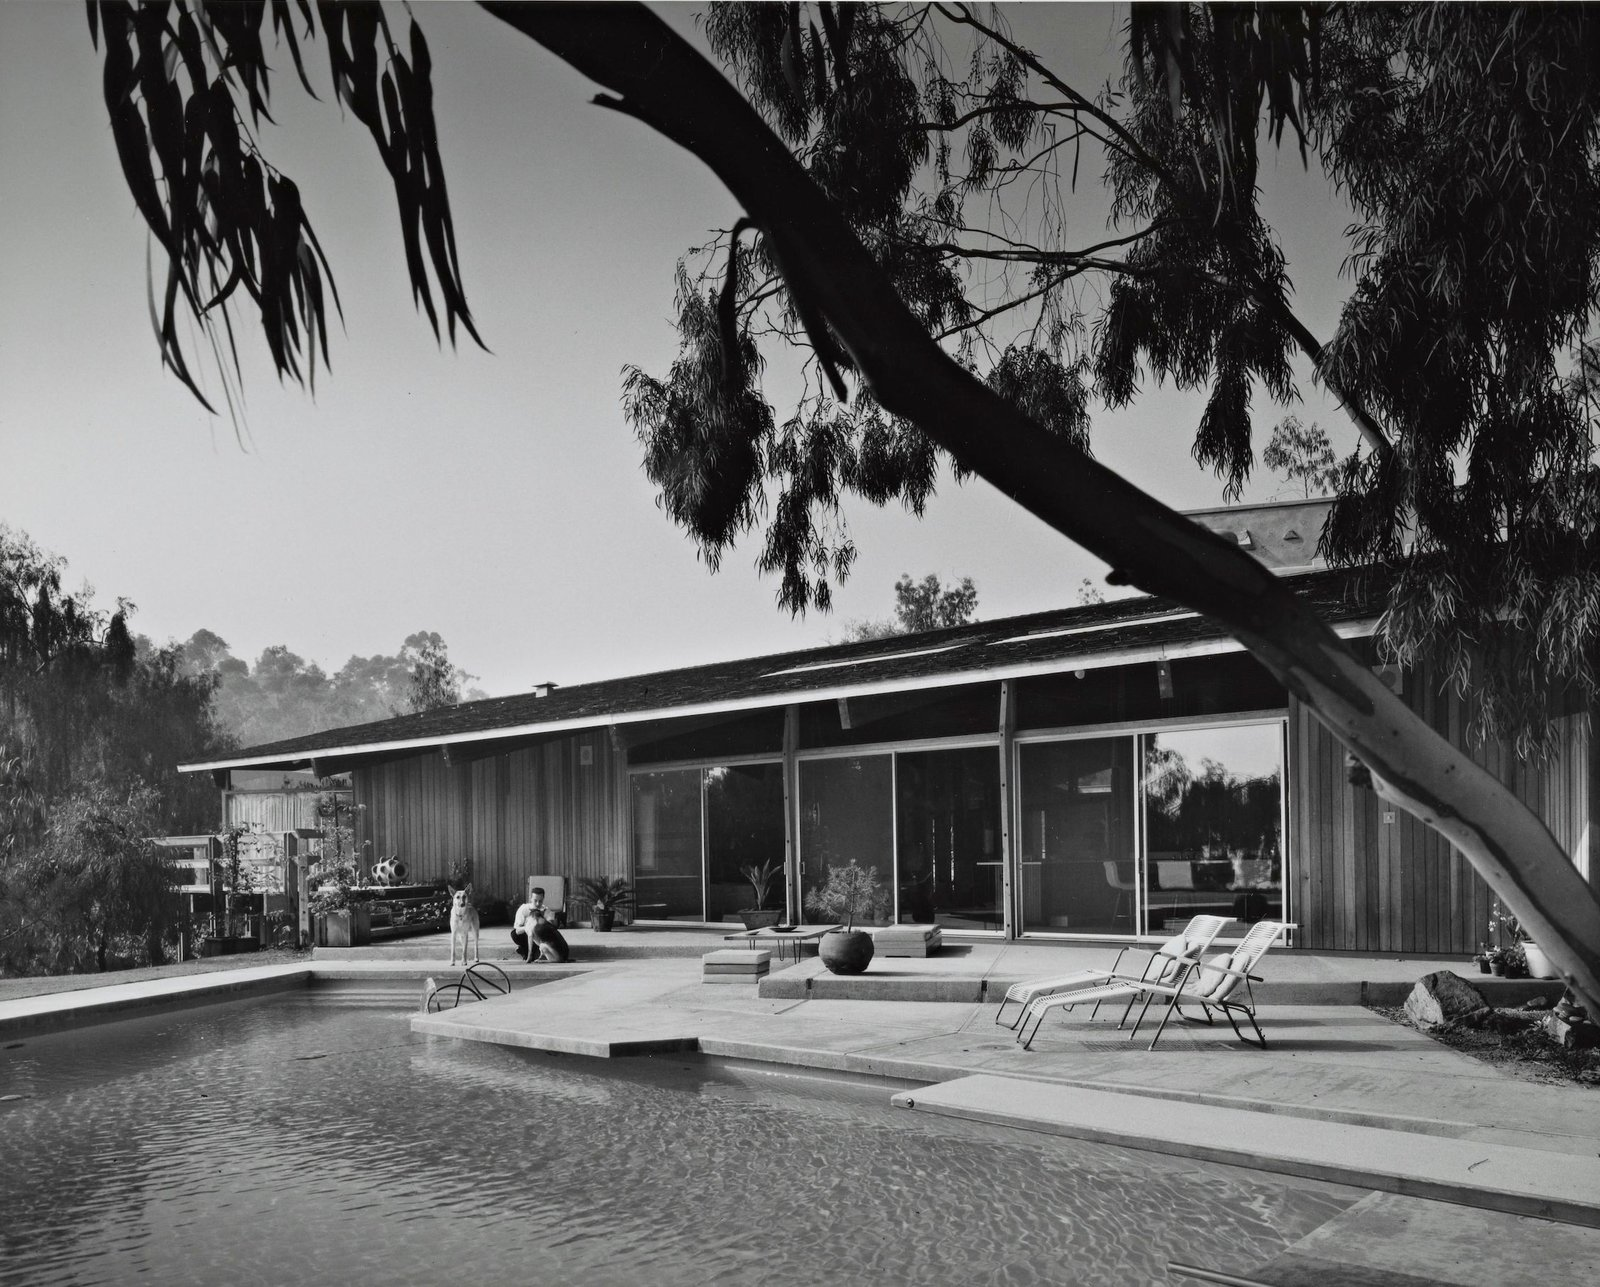 Outdoor  Photo 12 of 16 in A One-of-a-Kind Midcentury Modern Has Resurfaced on the Market to the Tune of $3.5M